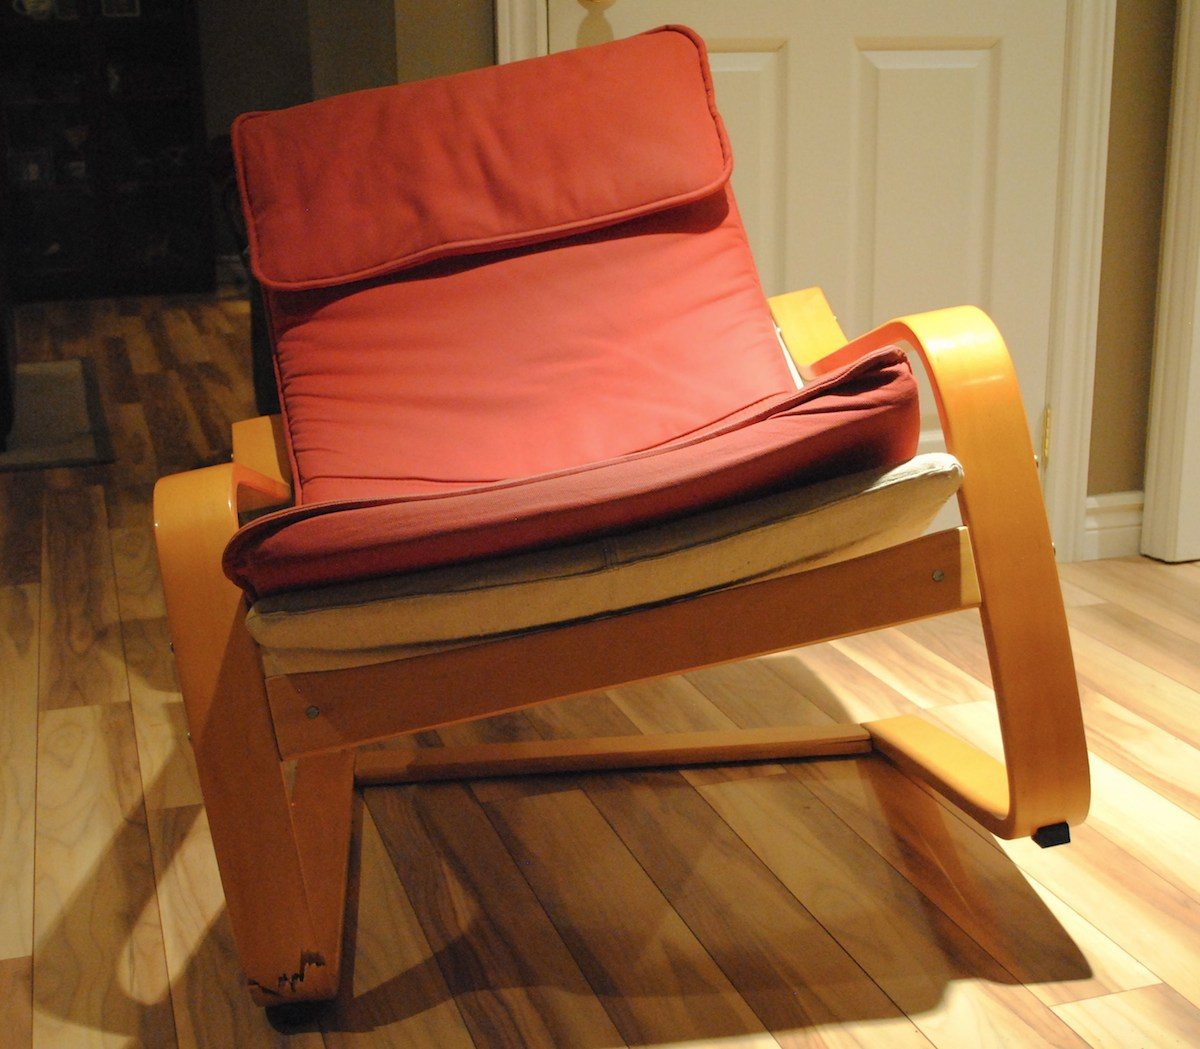 Ikea Poang chair that snapped